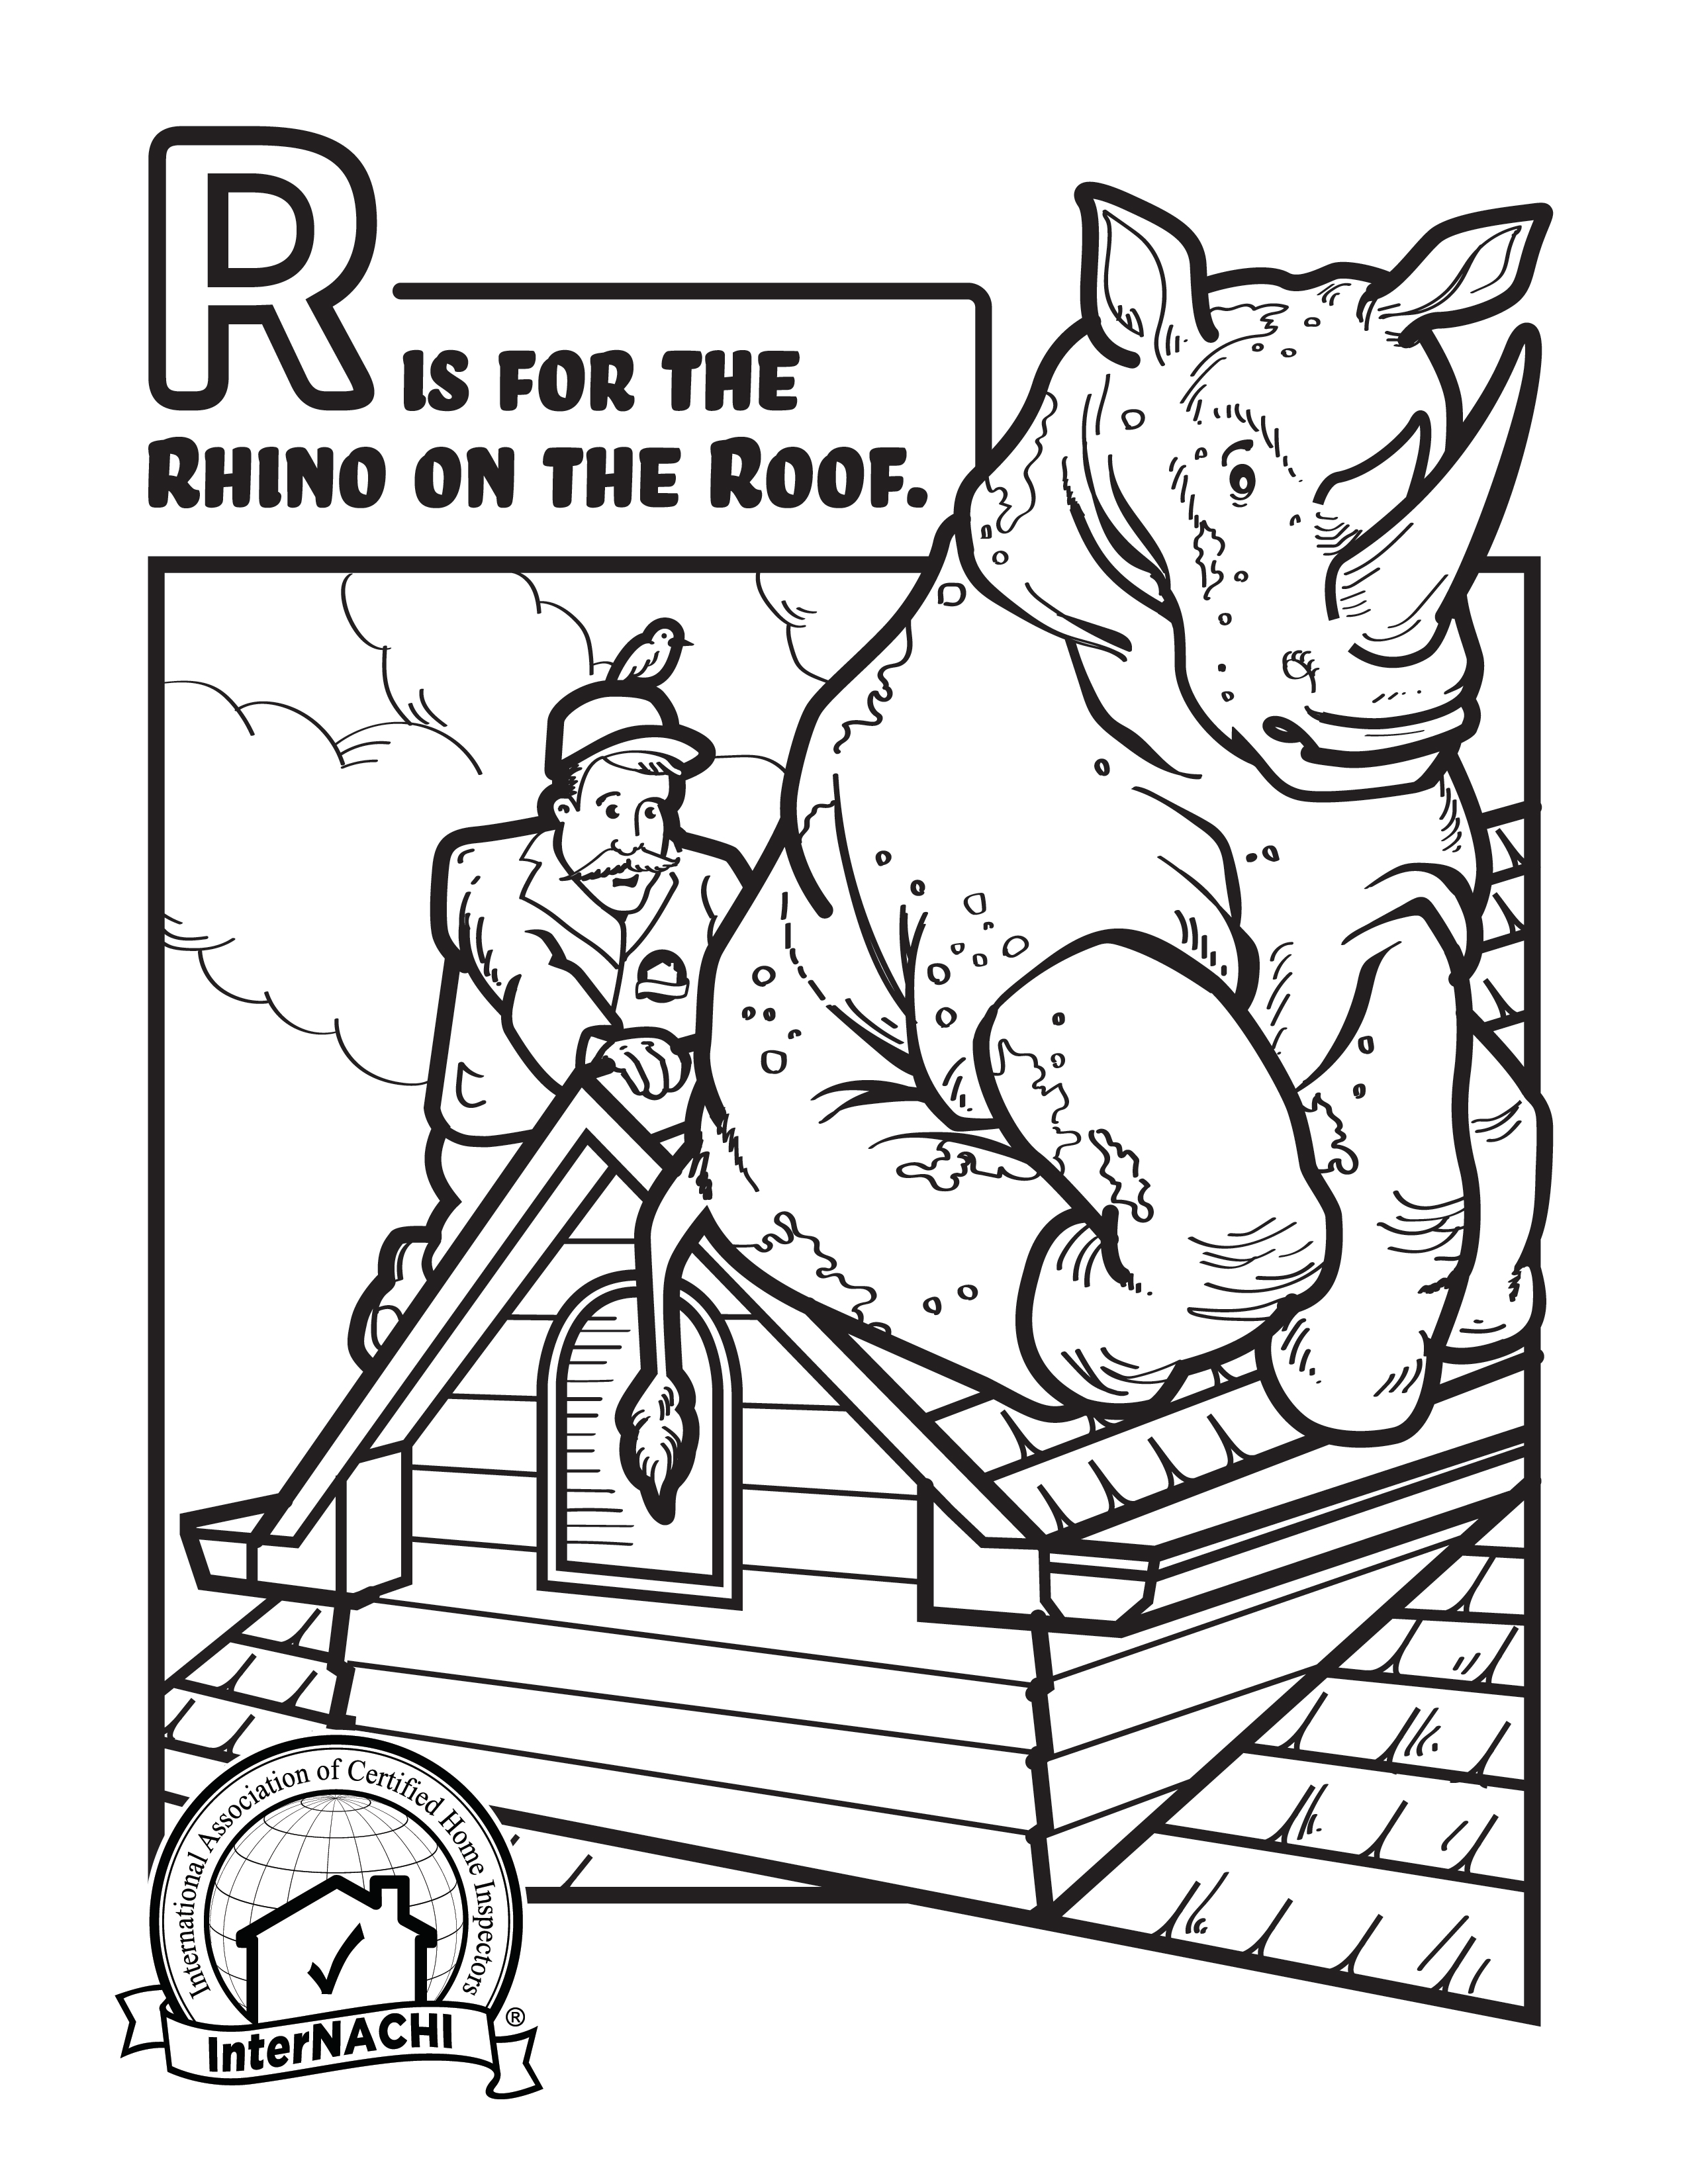 Print several of these coloring sheets and keep them handy! Give them to children who attend the inspection or leave them behind. Just don't forget the crayons!